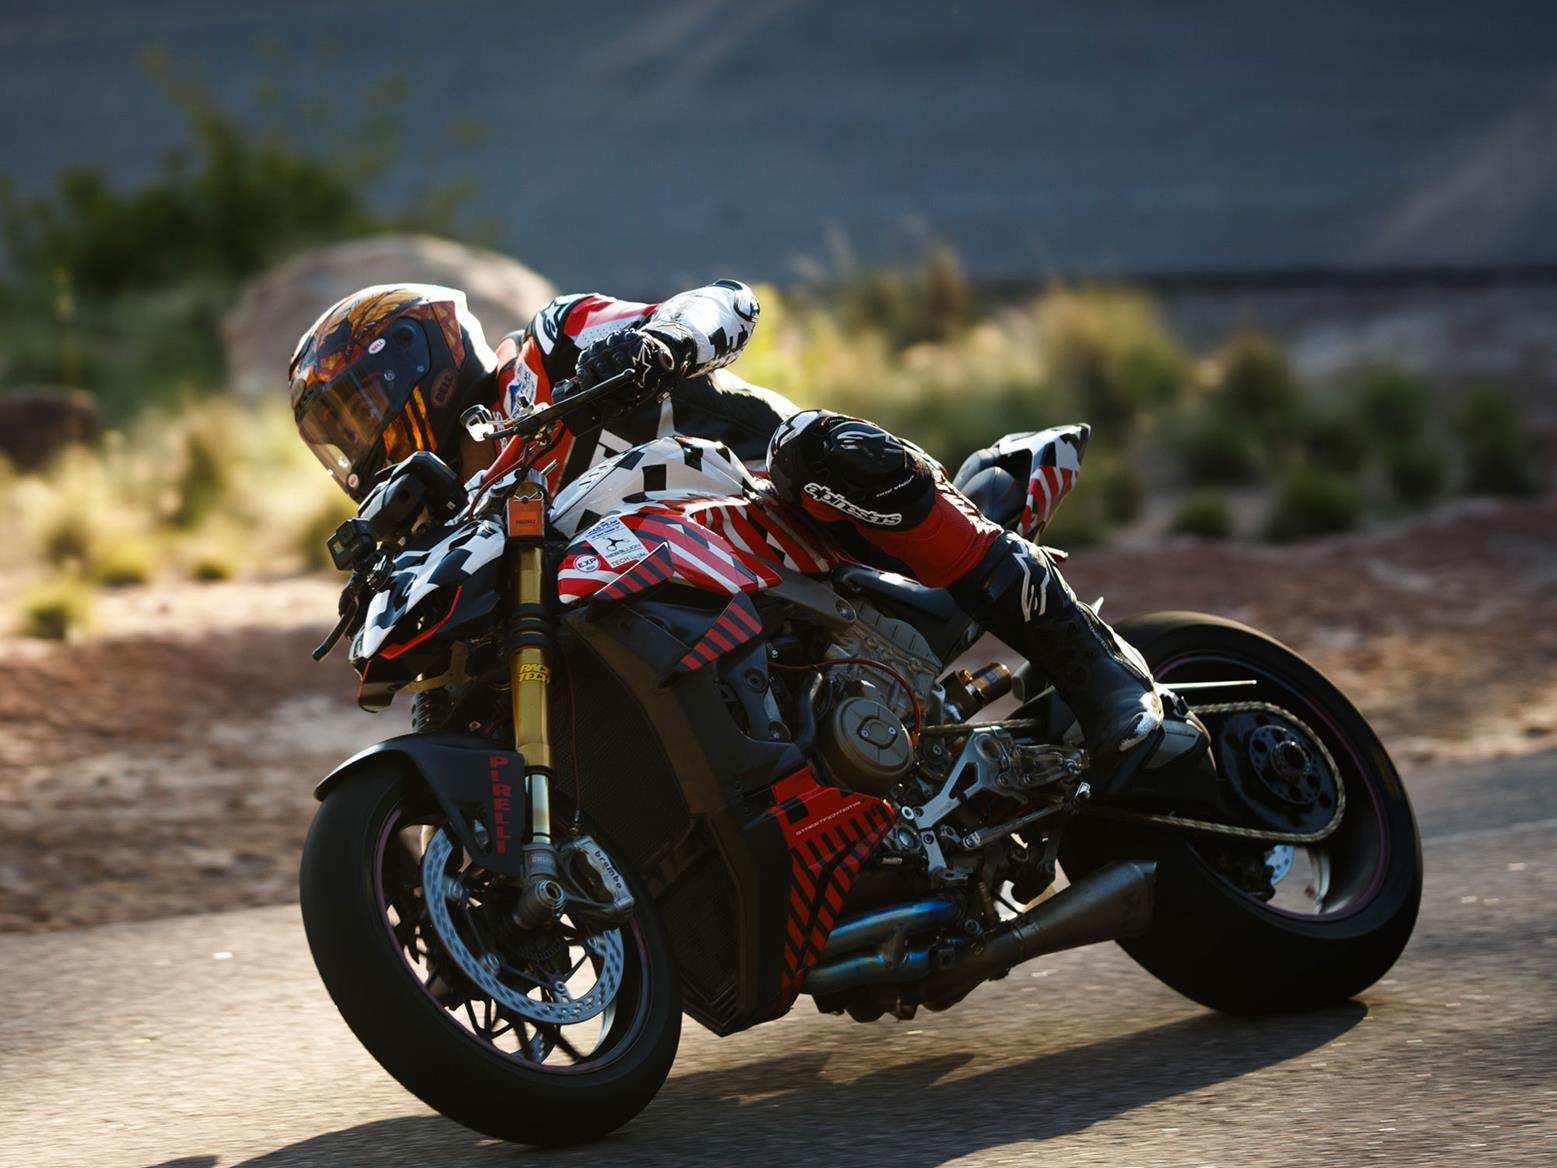 Ducati Streetfighter V4 at Pikes Peak